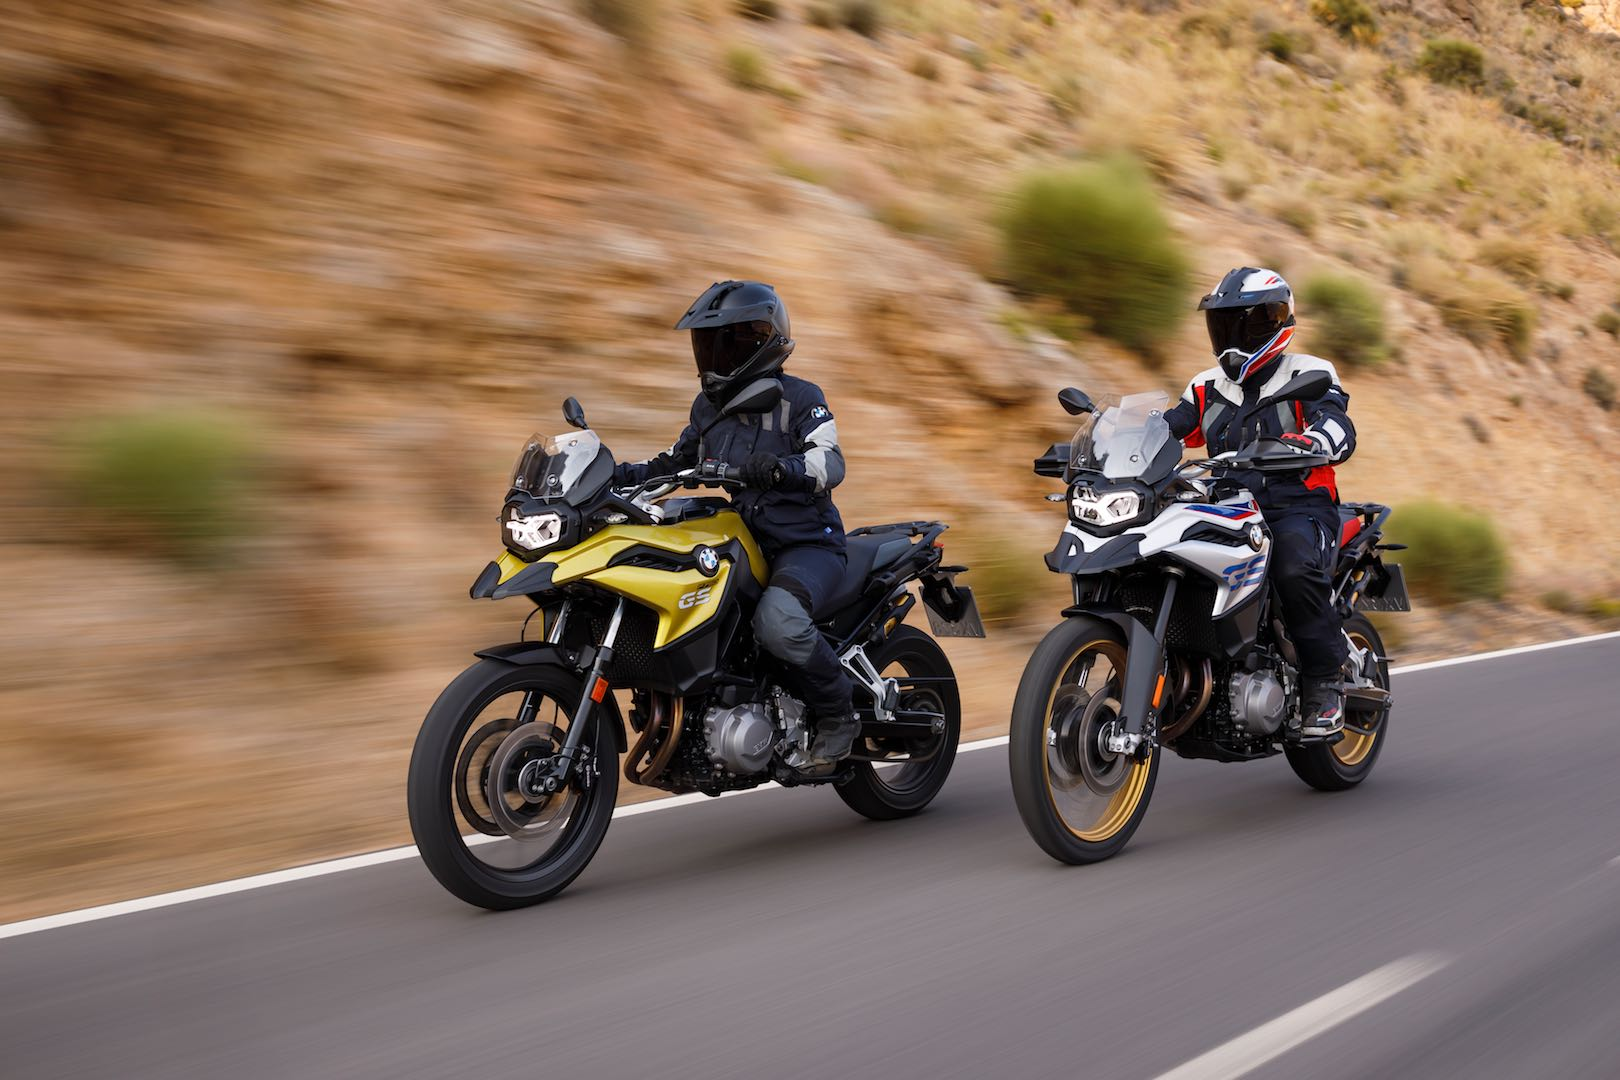 Check out the BMW Motorrad's new F 750 GS and F 850 GS